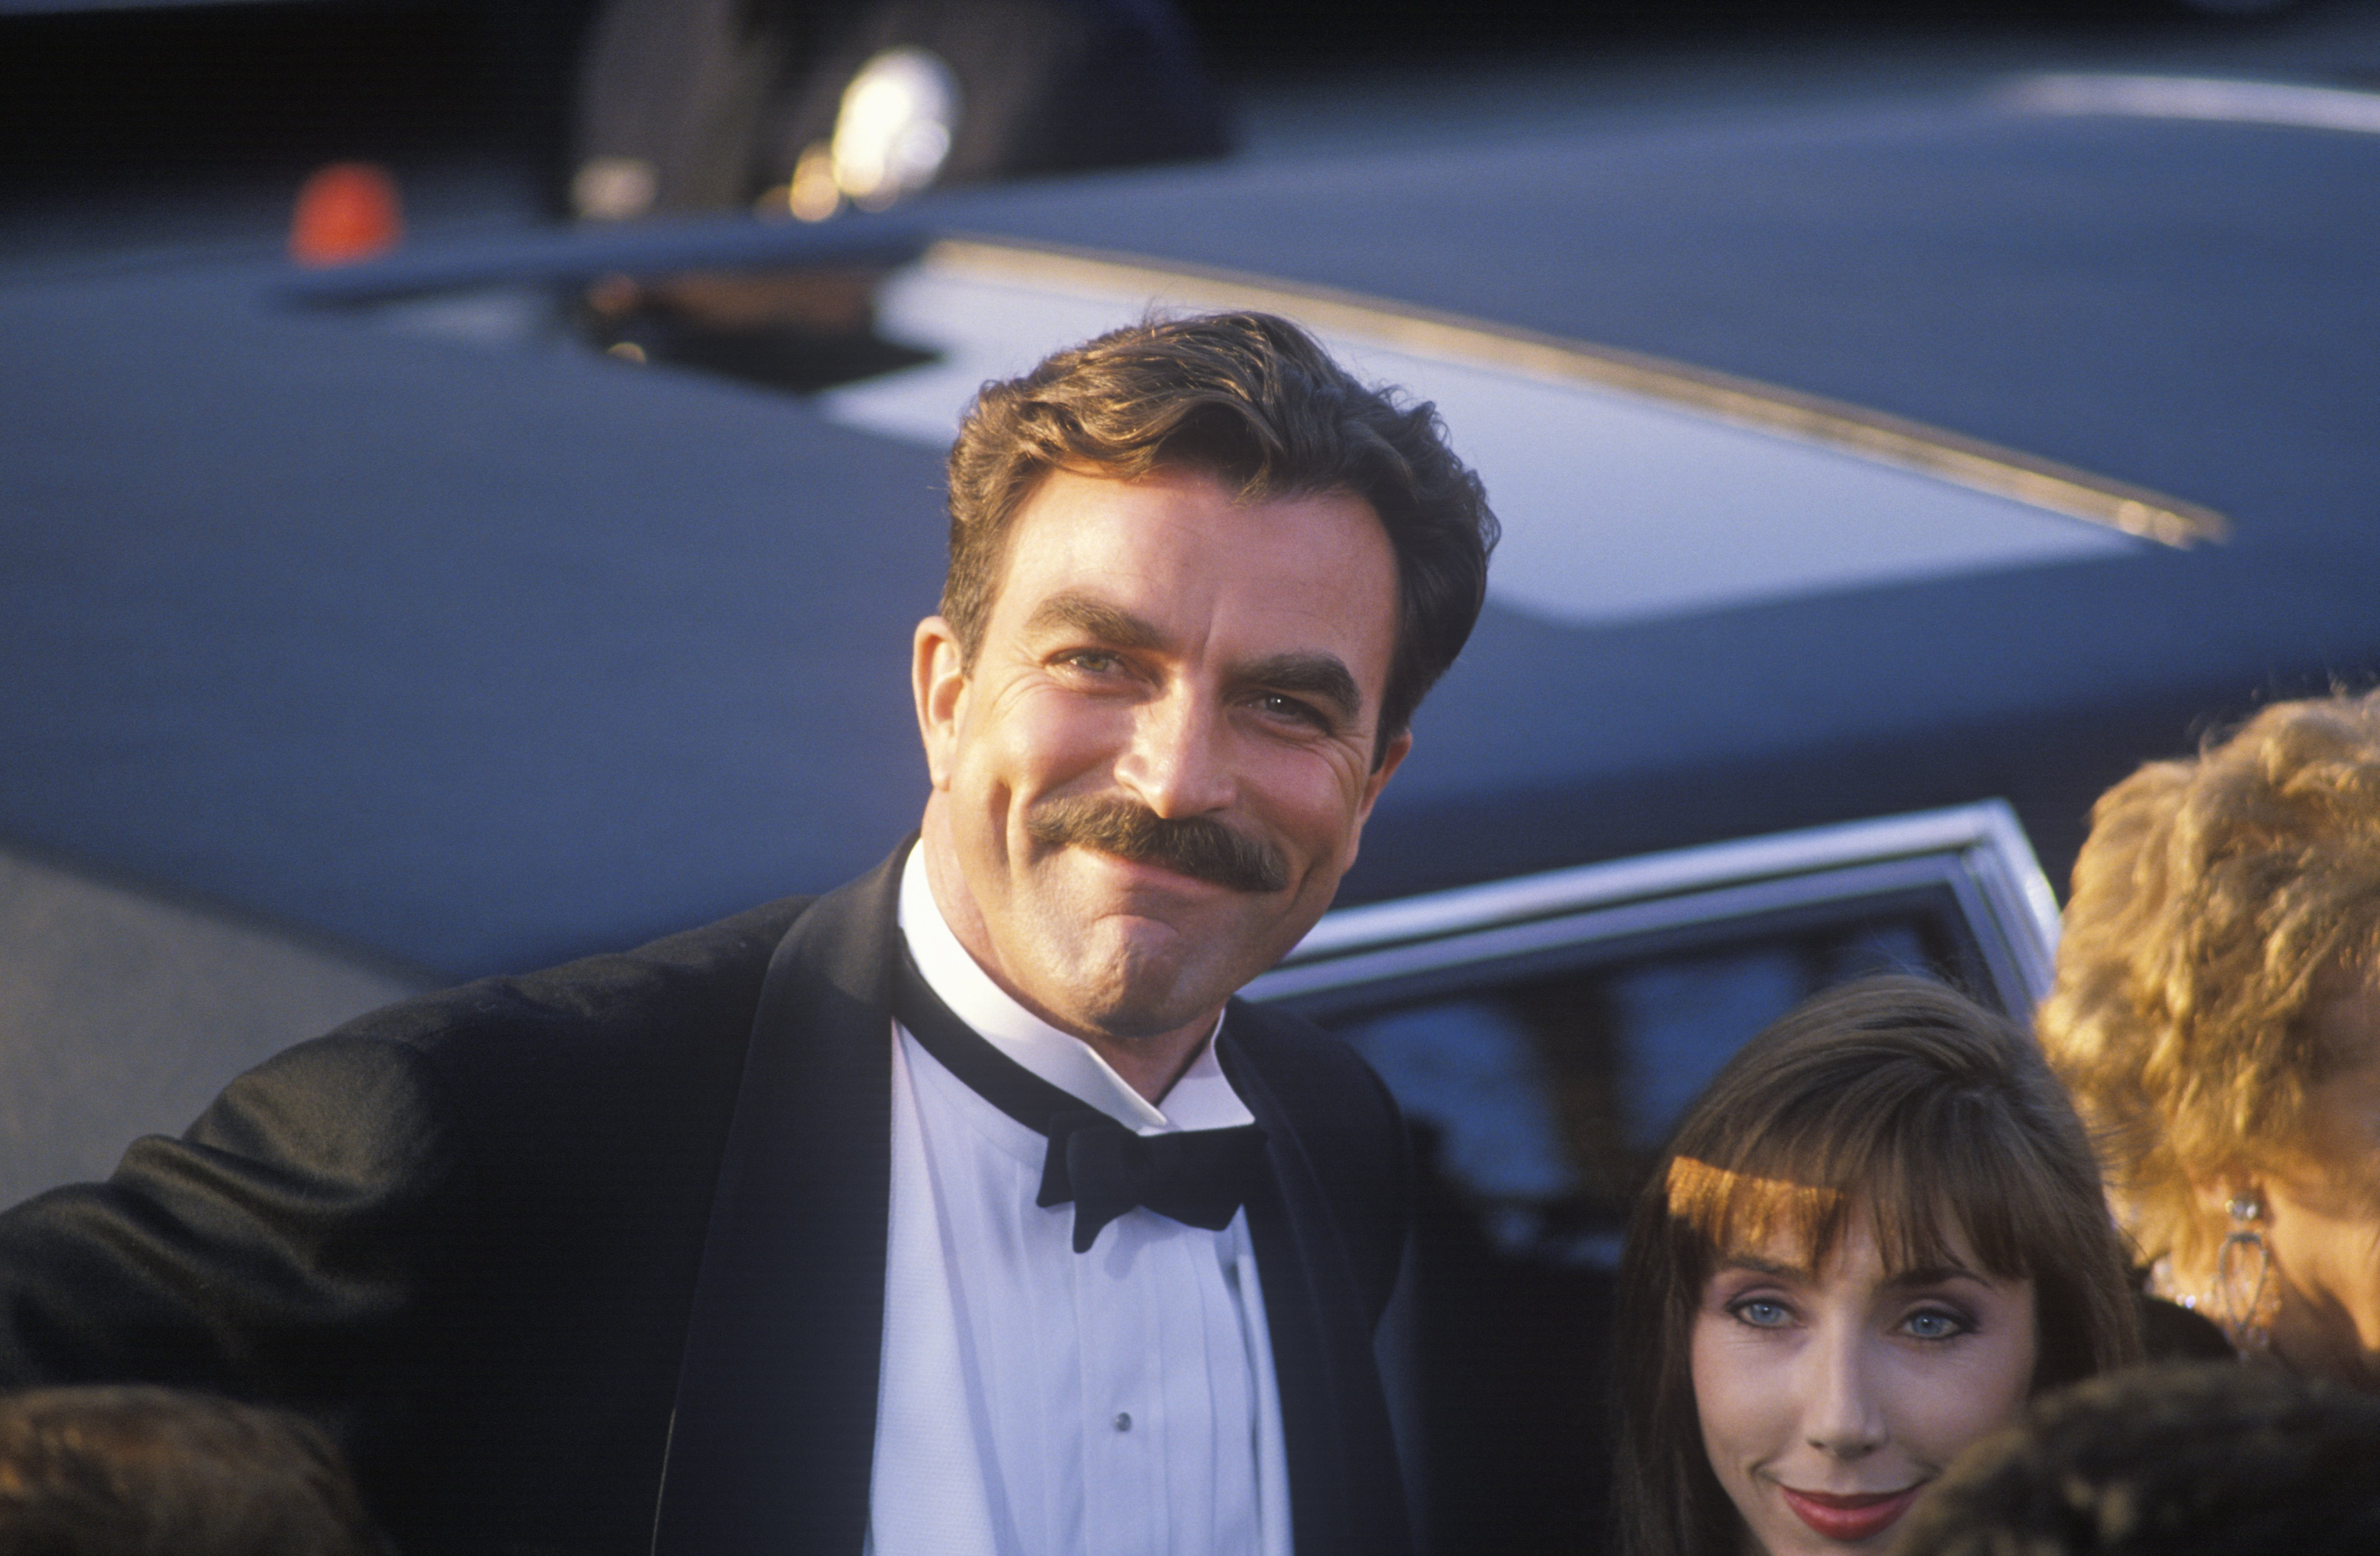 Tom Selleck at the 62nd Annual Academy Awards, Los Angeles, California, March 26, 1990. | Photo: GettyImages